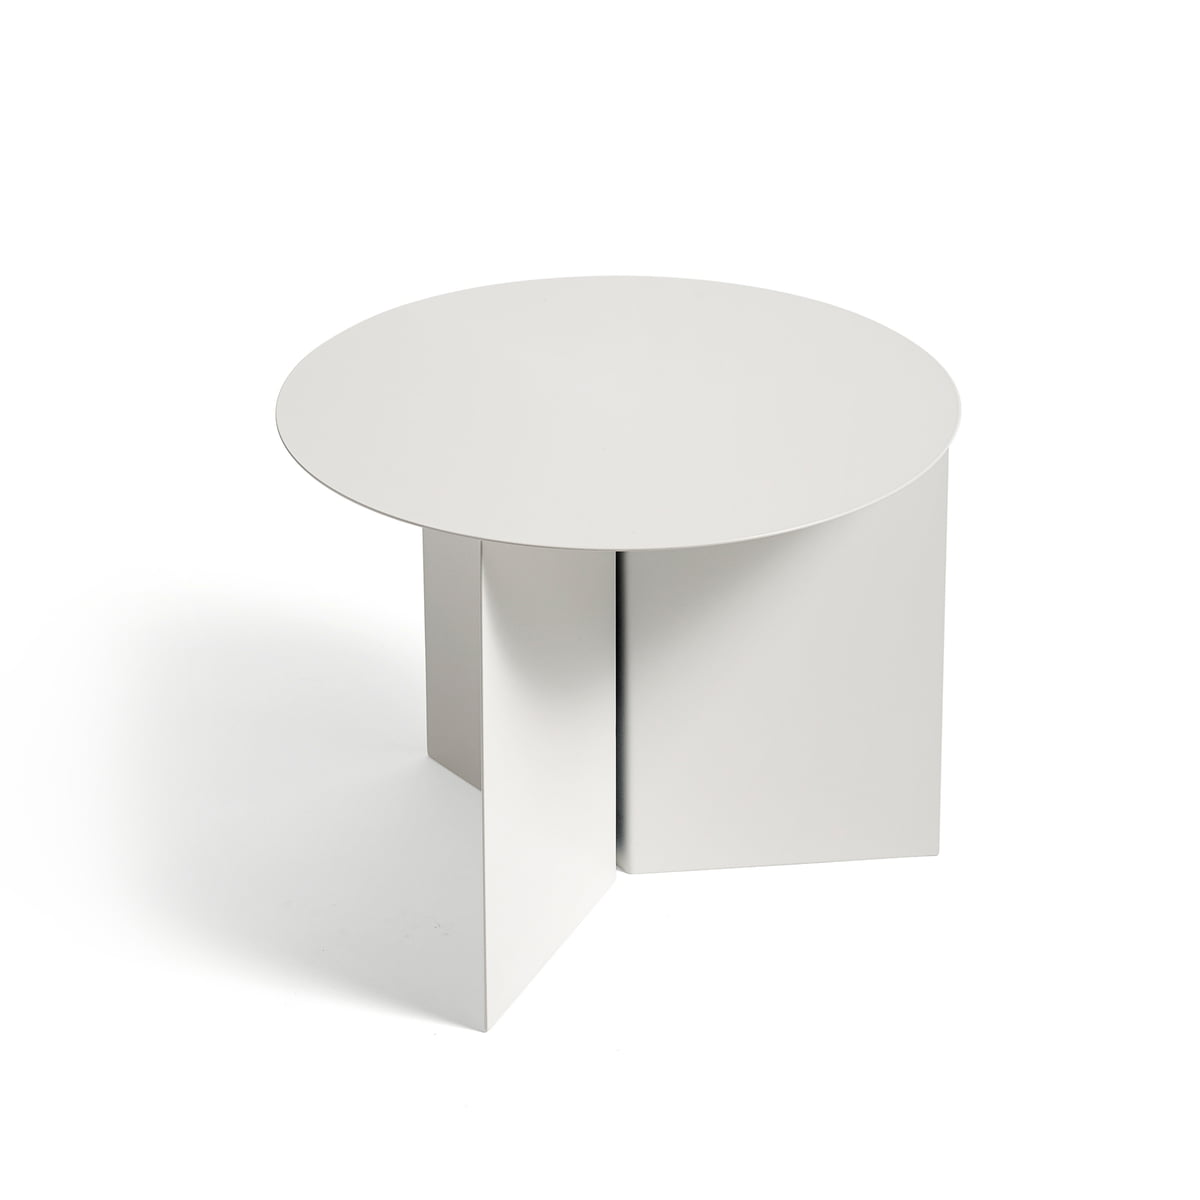 Beau Hay   Slit Table Round, White